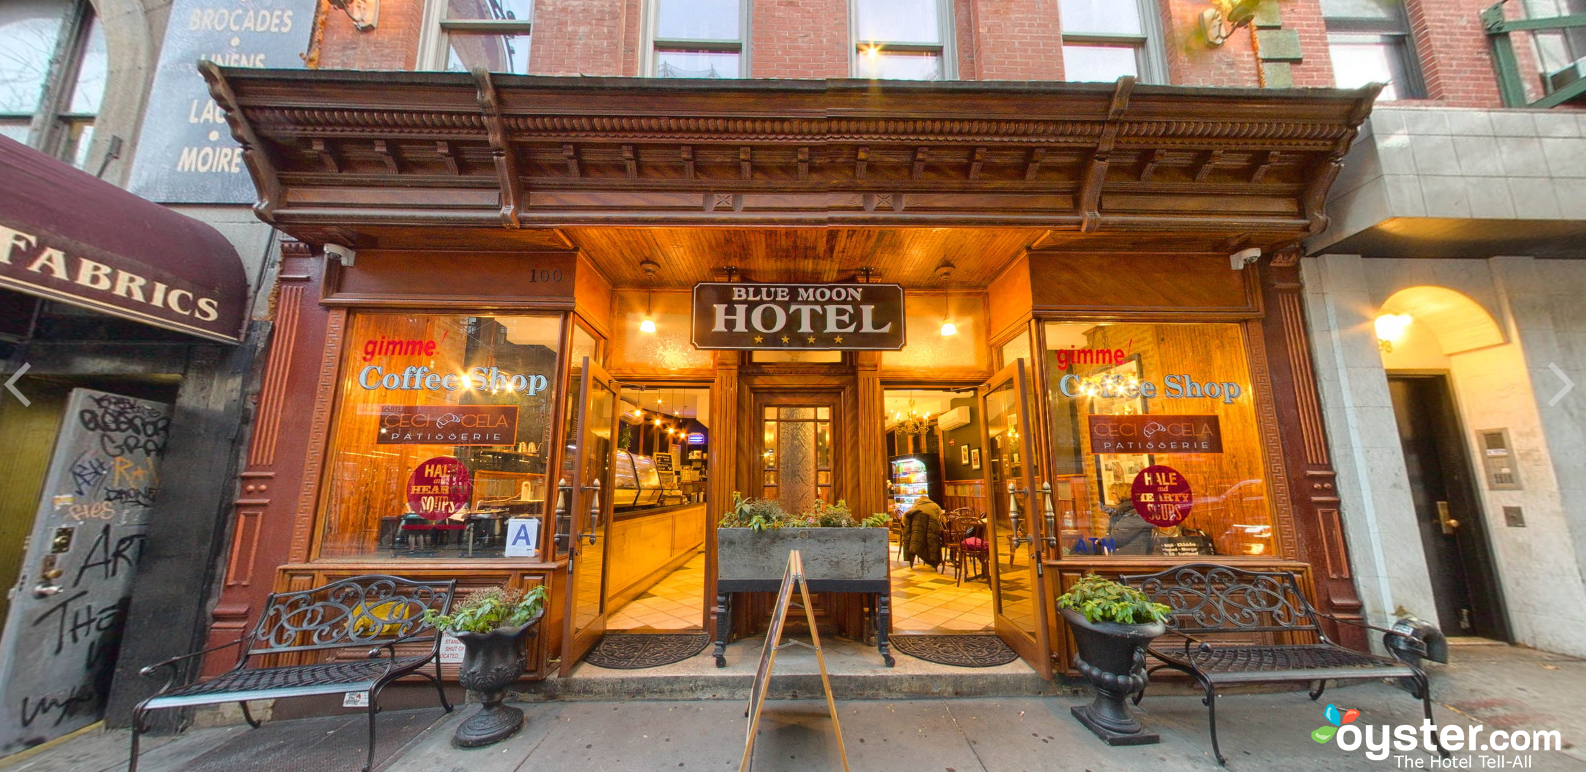 Blue moon boutique hotel ny day rooms hotelsbyday for Boutique hotel